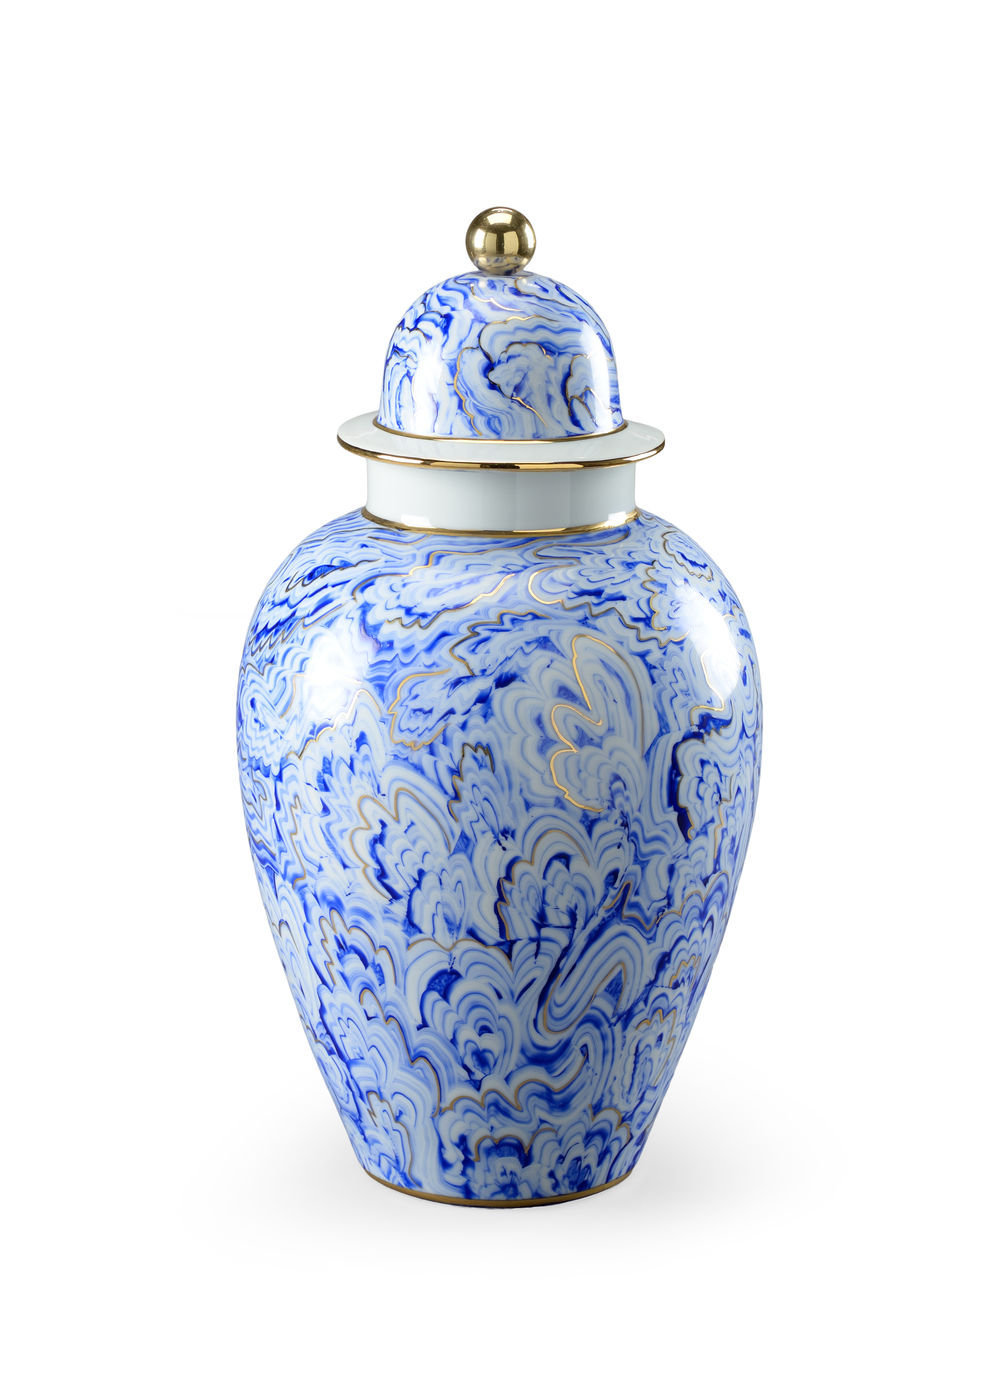 Chelsea House - Marbleized Covered Urn